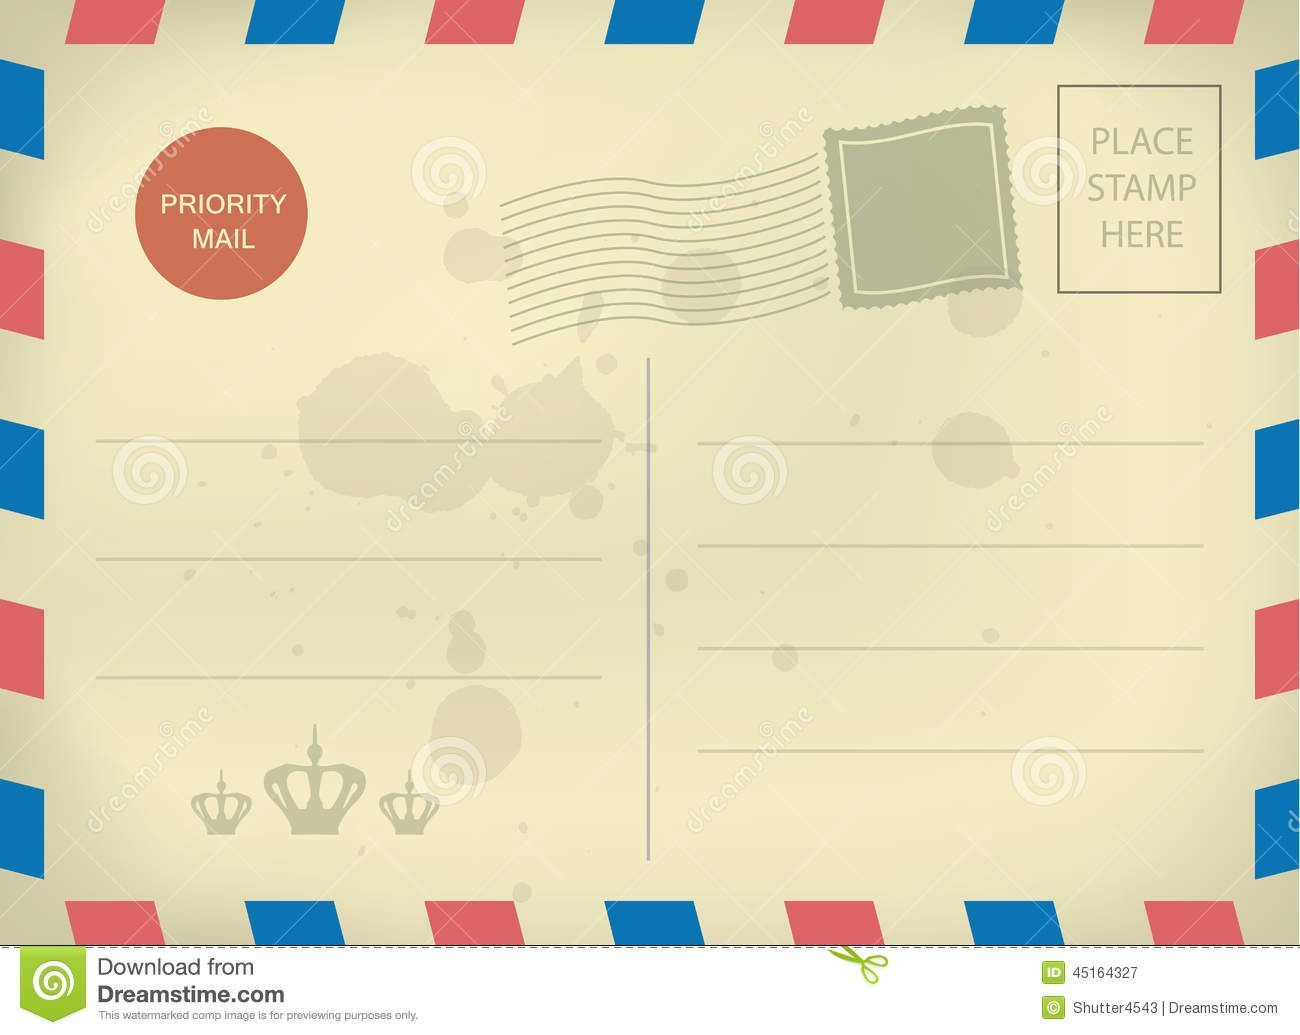 Free Postcard Template Download. Printable Postcard Template,Free ...